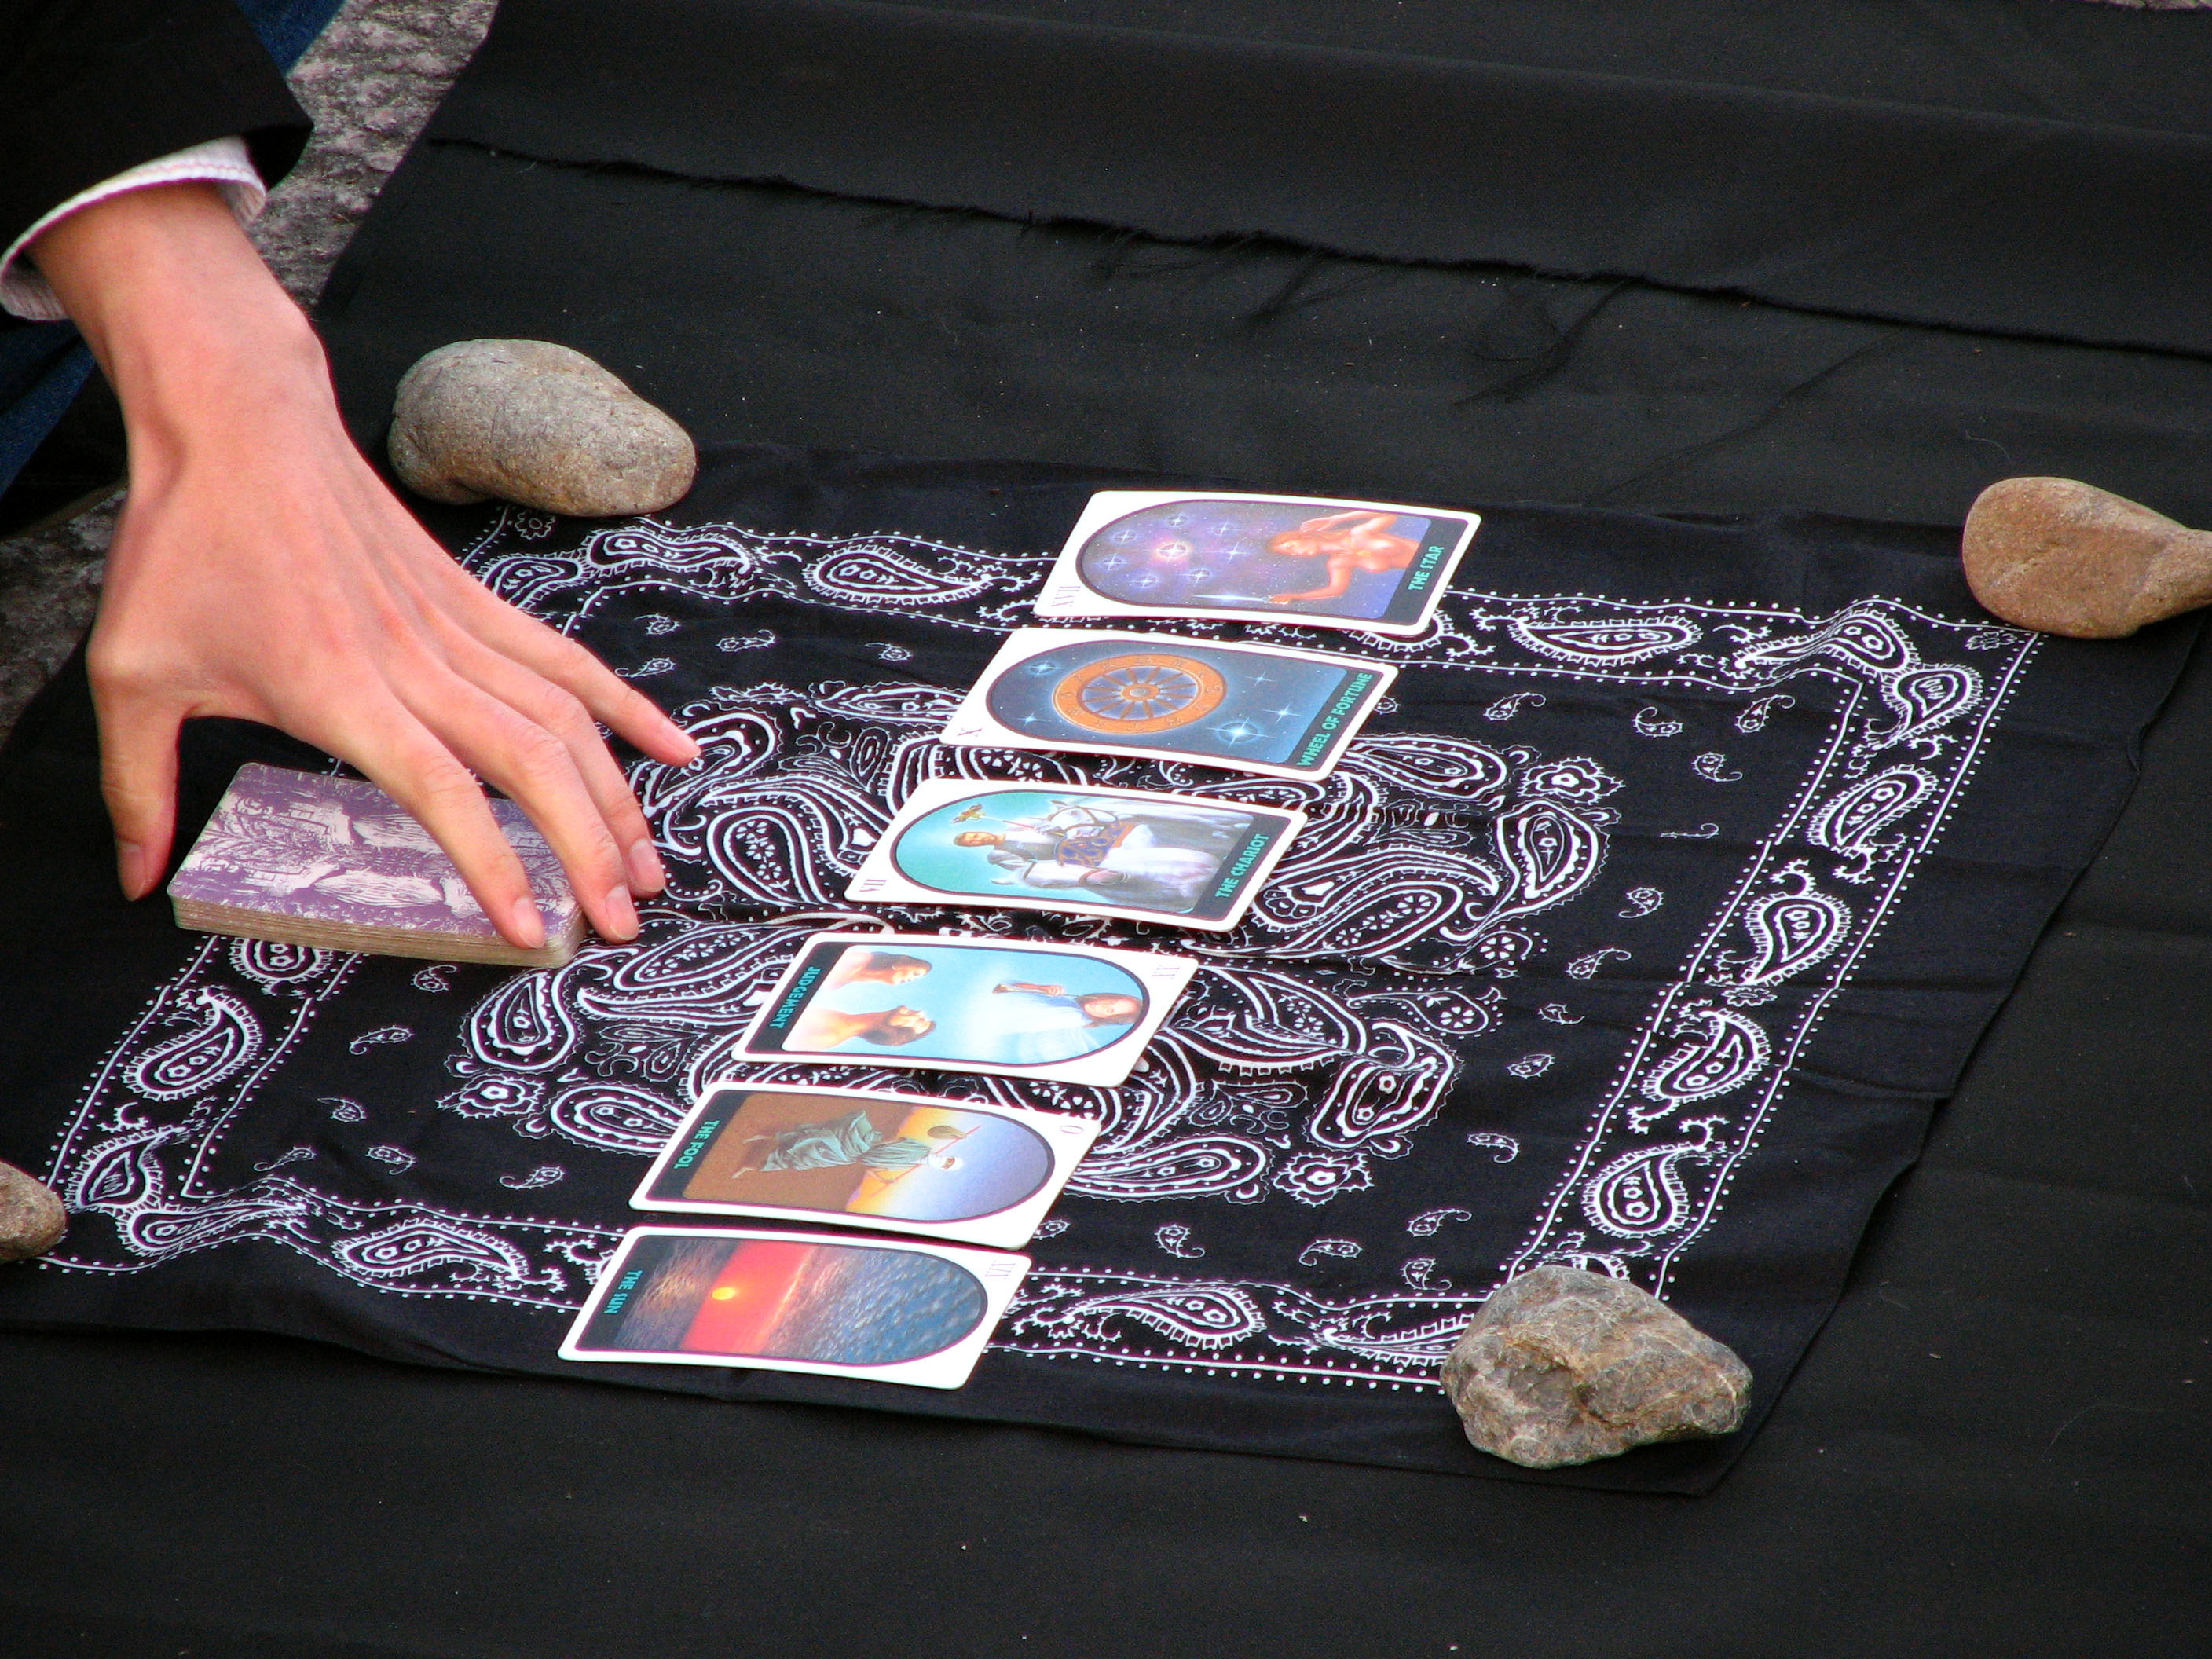 Tarot reader.jpg English: Looks like he's using all Major Arcana for his readings. Either that, or his customer is going to have a VERY interesting